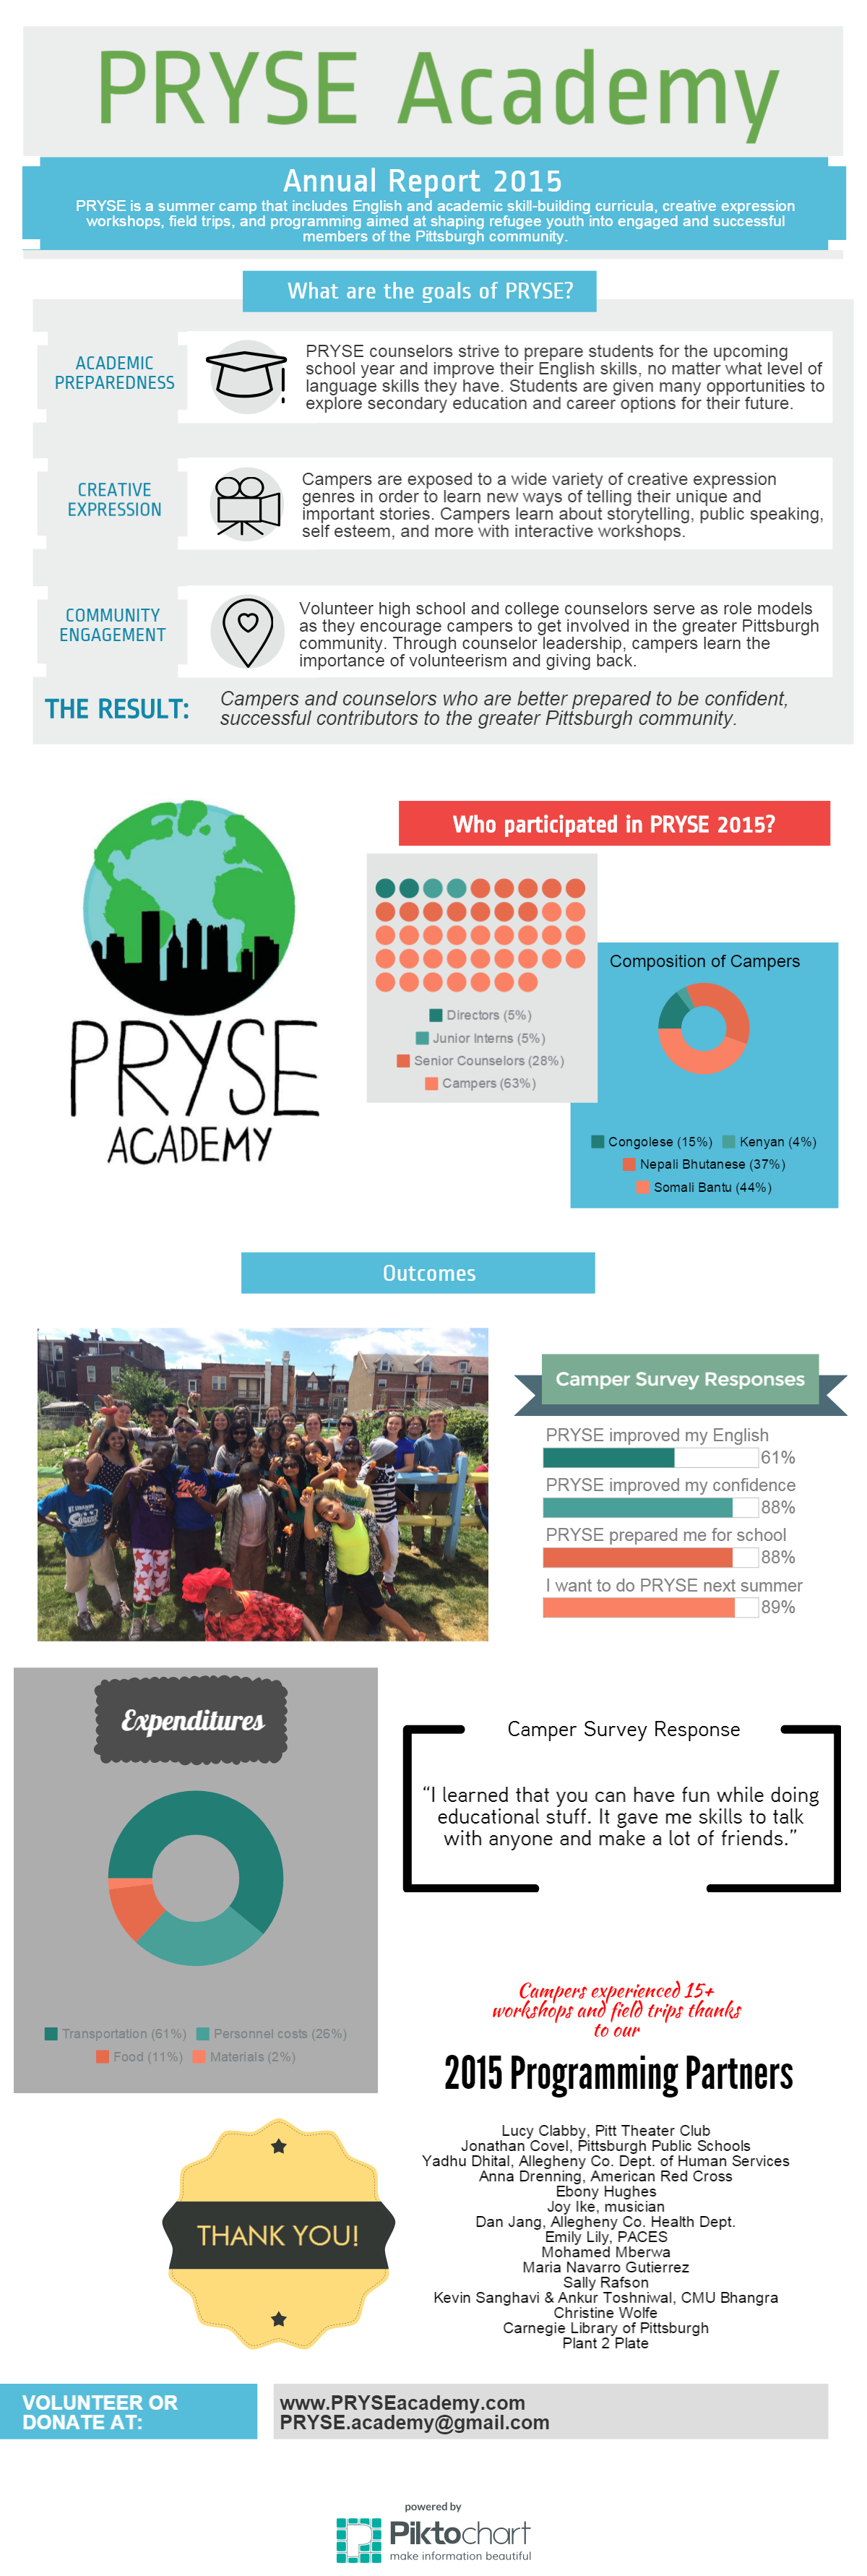 PRYSE Academy Annual Report 2015